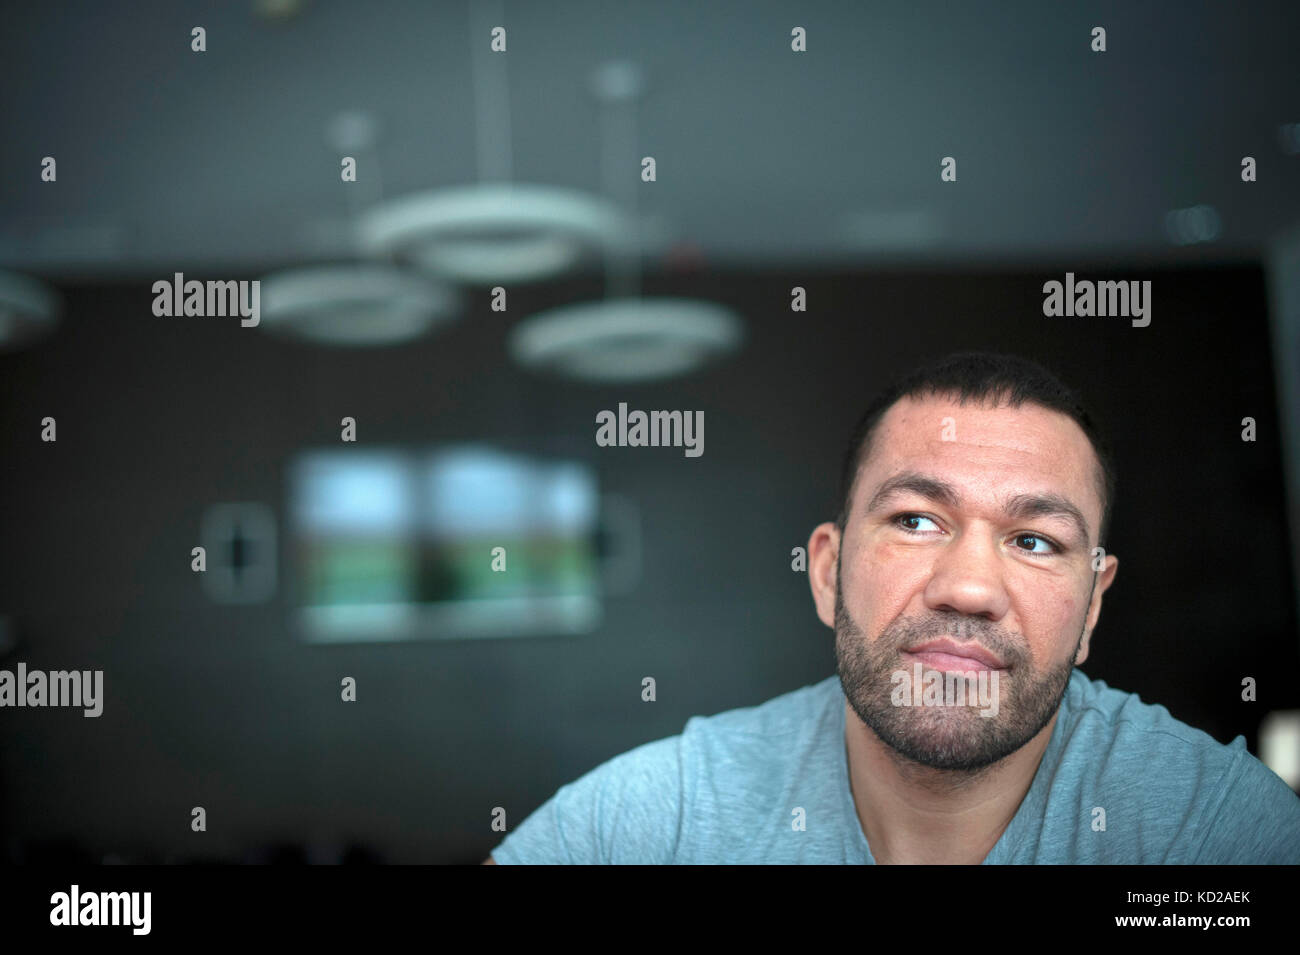 Bulgarische schweres Gewicht Boxer Kubrat Pulev am Bundesleistungszentrum Kienbaum (Kienbaum National Training Center) Stockfoto